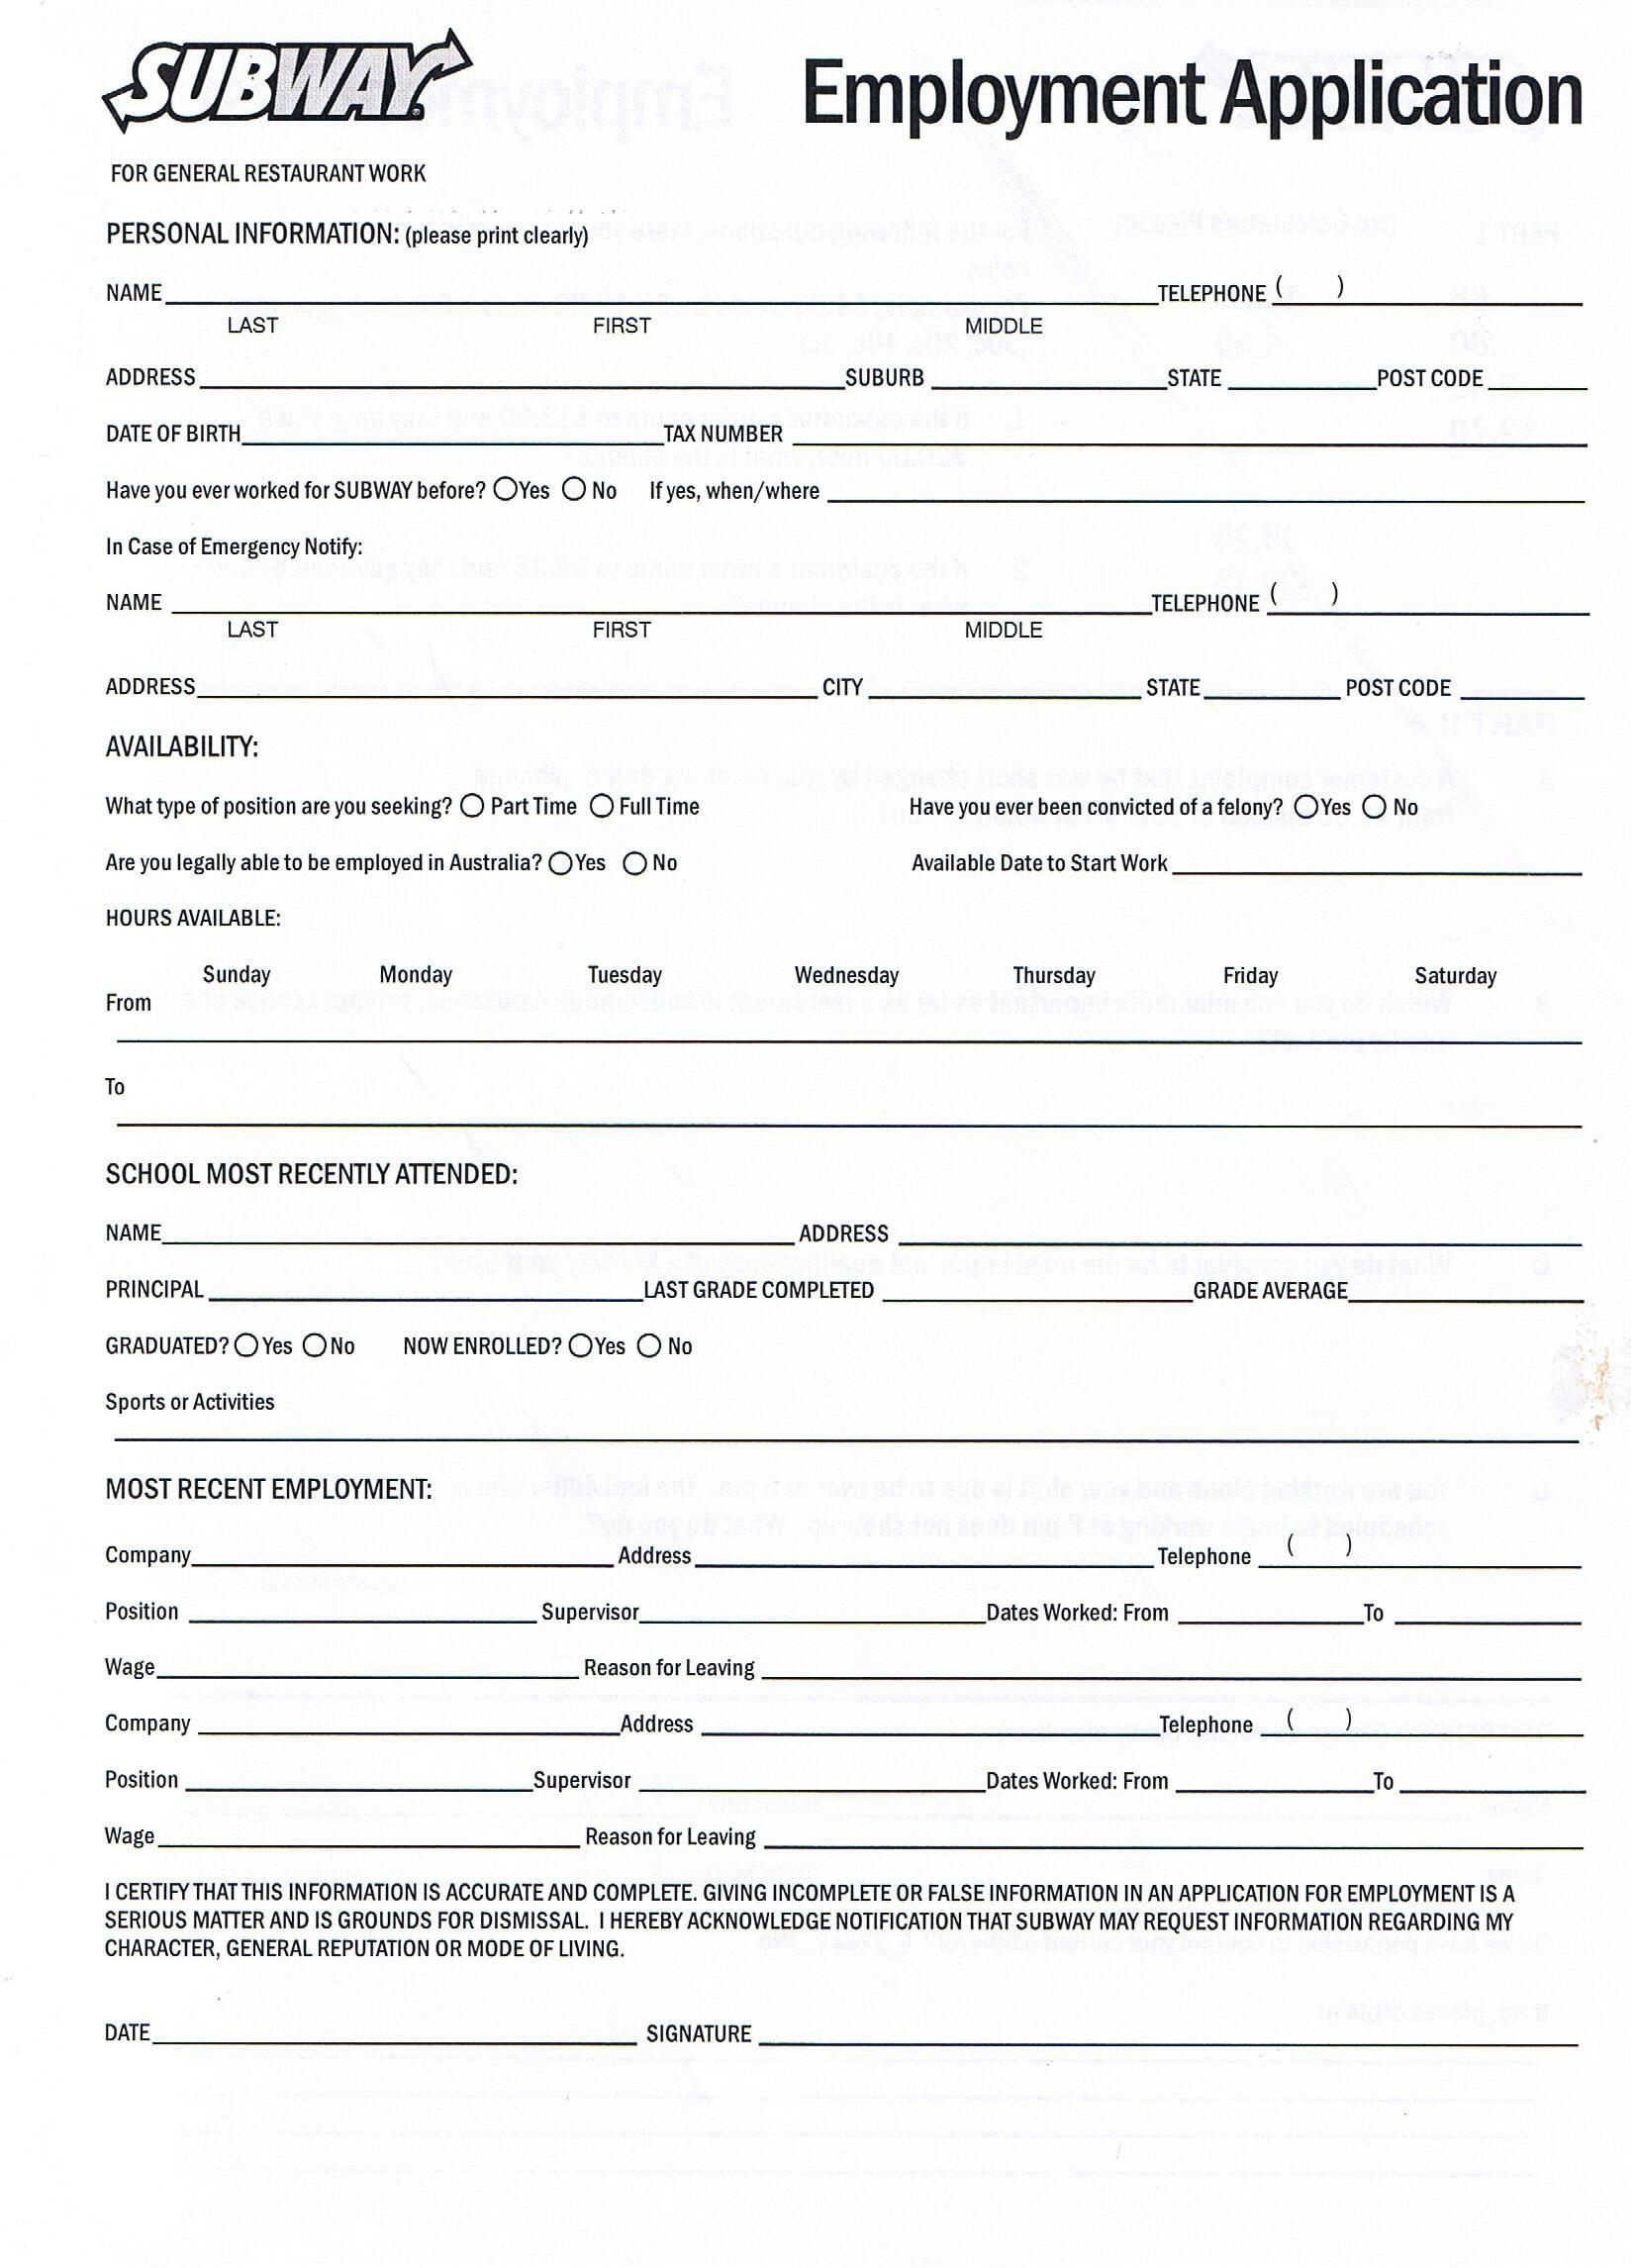 Printable Job Application Forms Online Forms, Download And Print - Free Printable Job Application Template